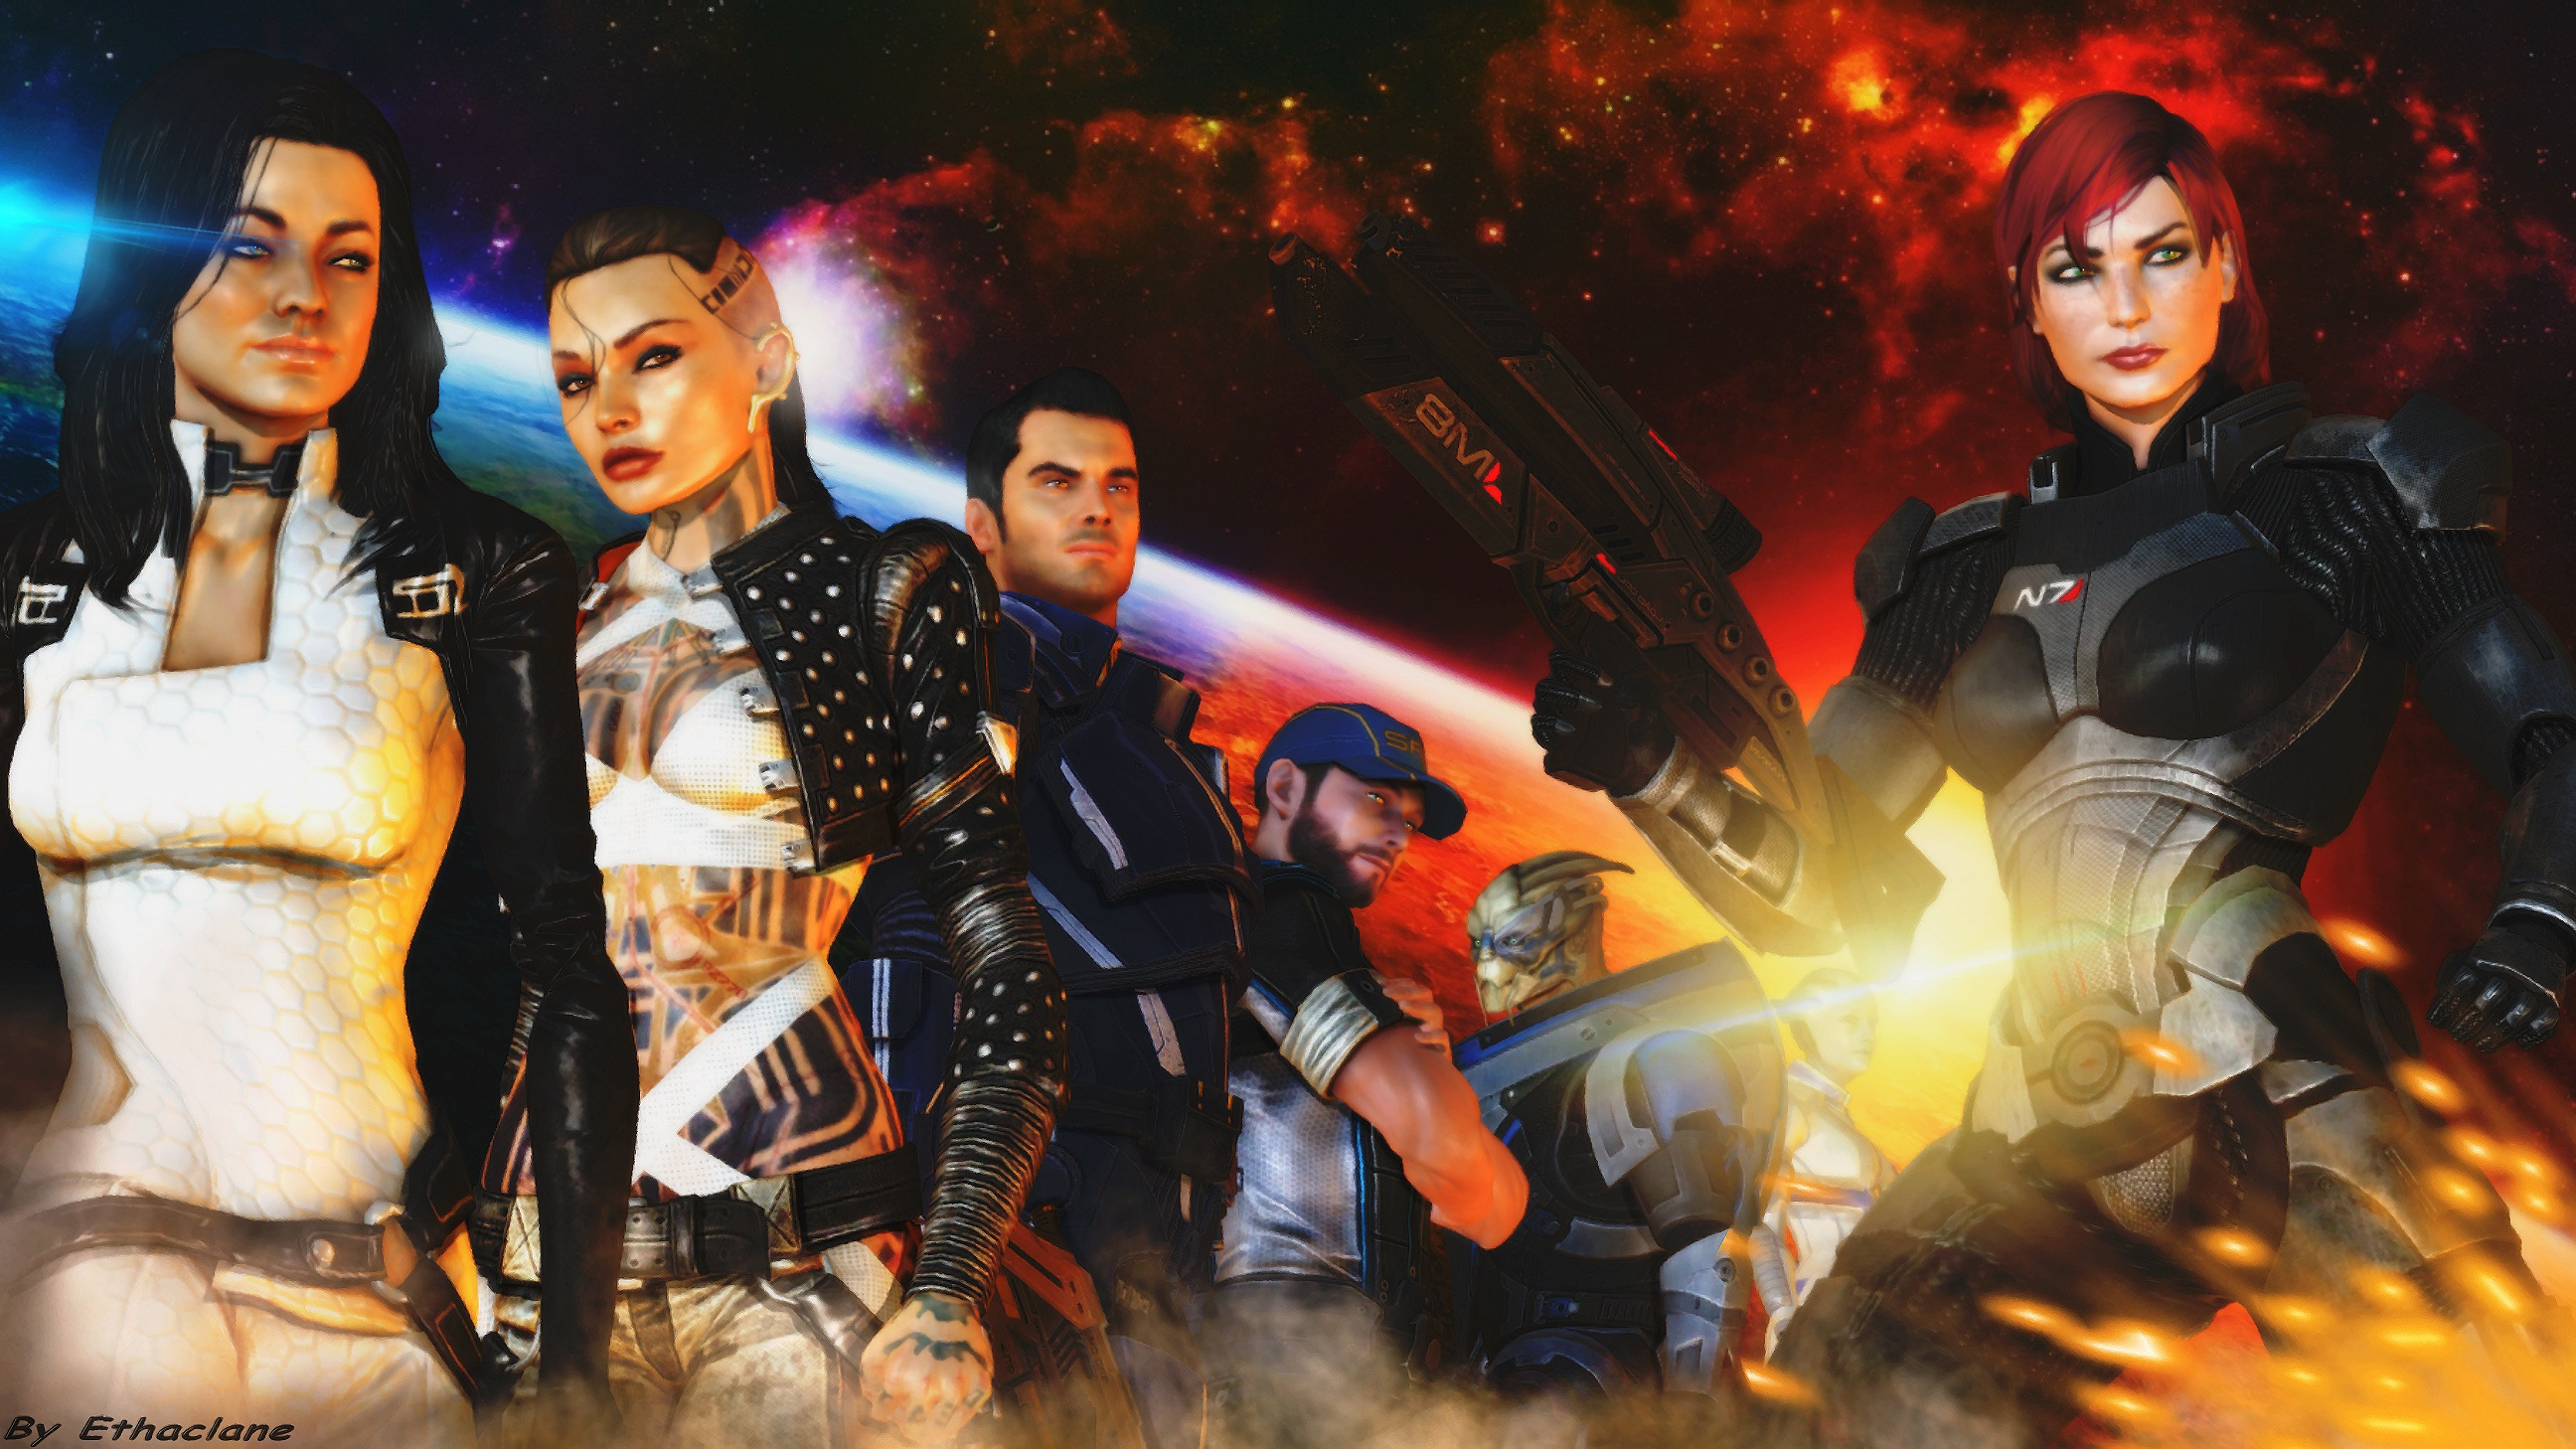 Free Download Mass Effect Wallpaper Femshep Version By Ethaclane